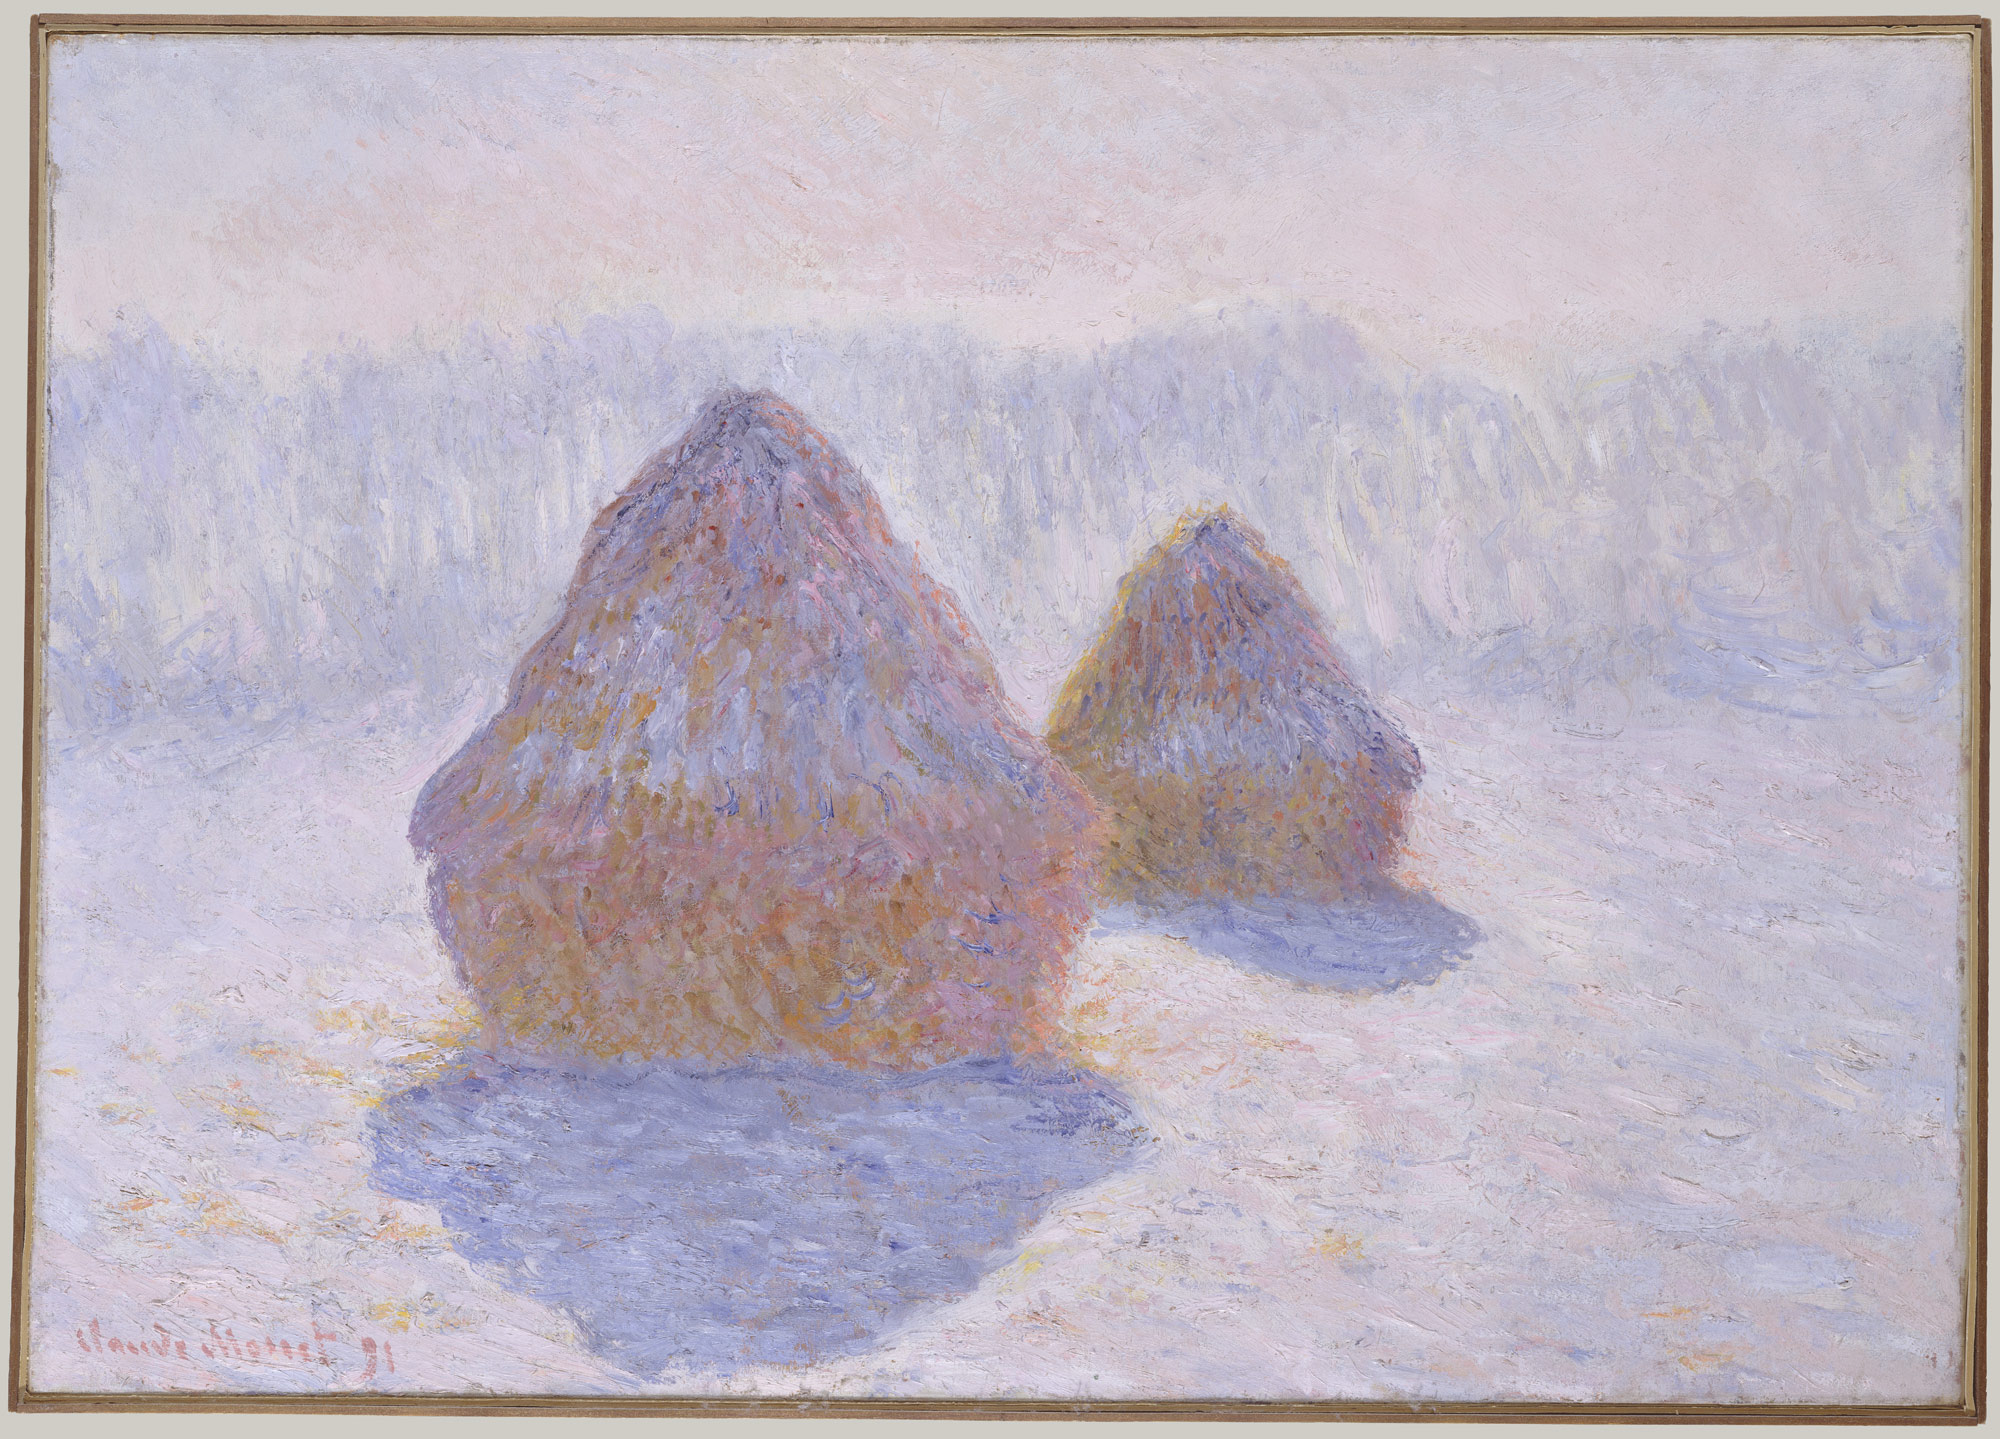 claude monet 1840 1926 essay heilbrunn timeline of art haystacks effect of snow and sun